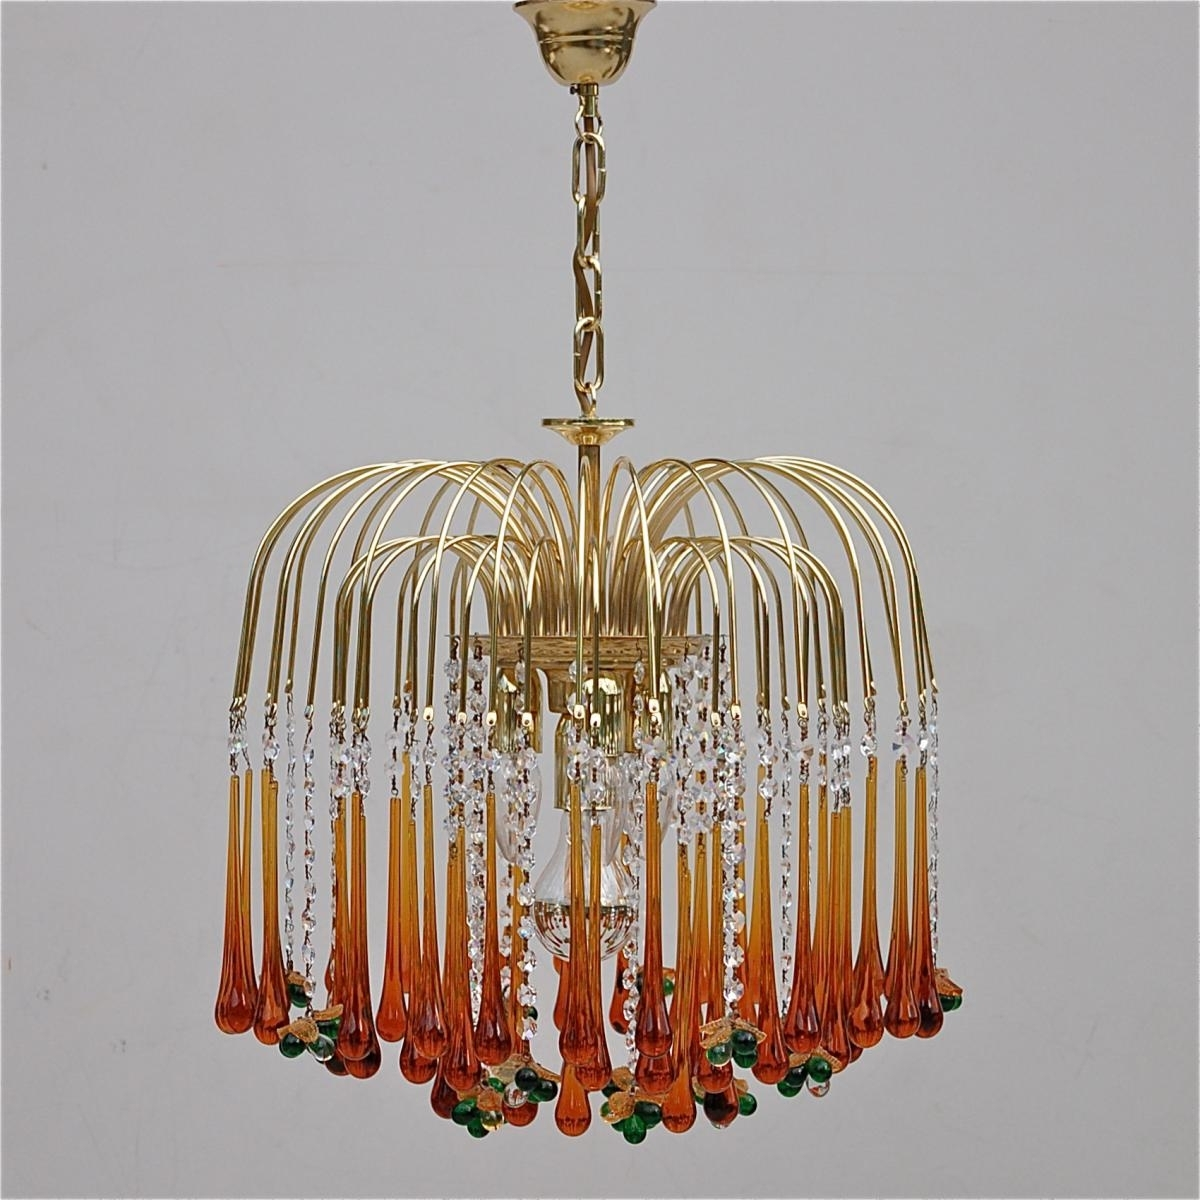 Vintage Teardrop And Fruit Murano Glass Chandelier For Sale At Pamono Pertaining To Well Known Glass Chandelier (Gallery 3 of 15)